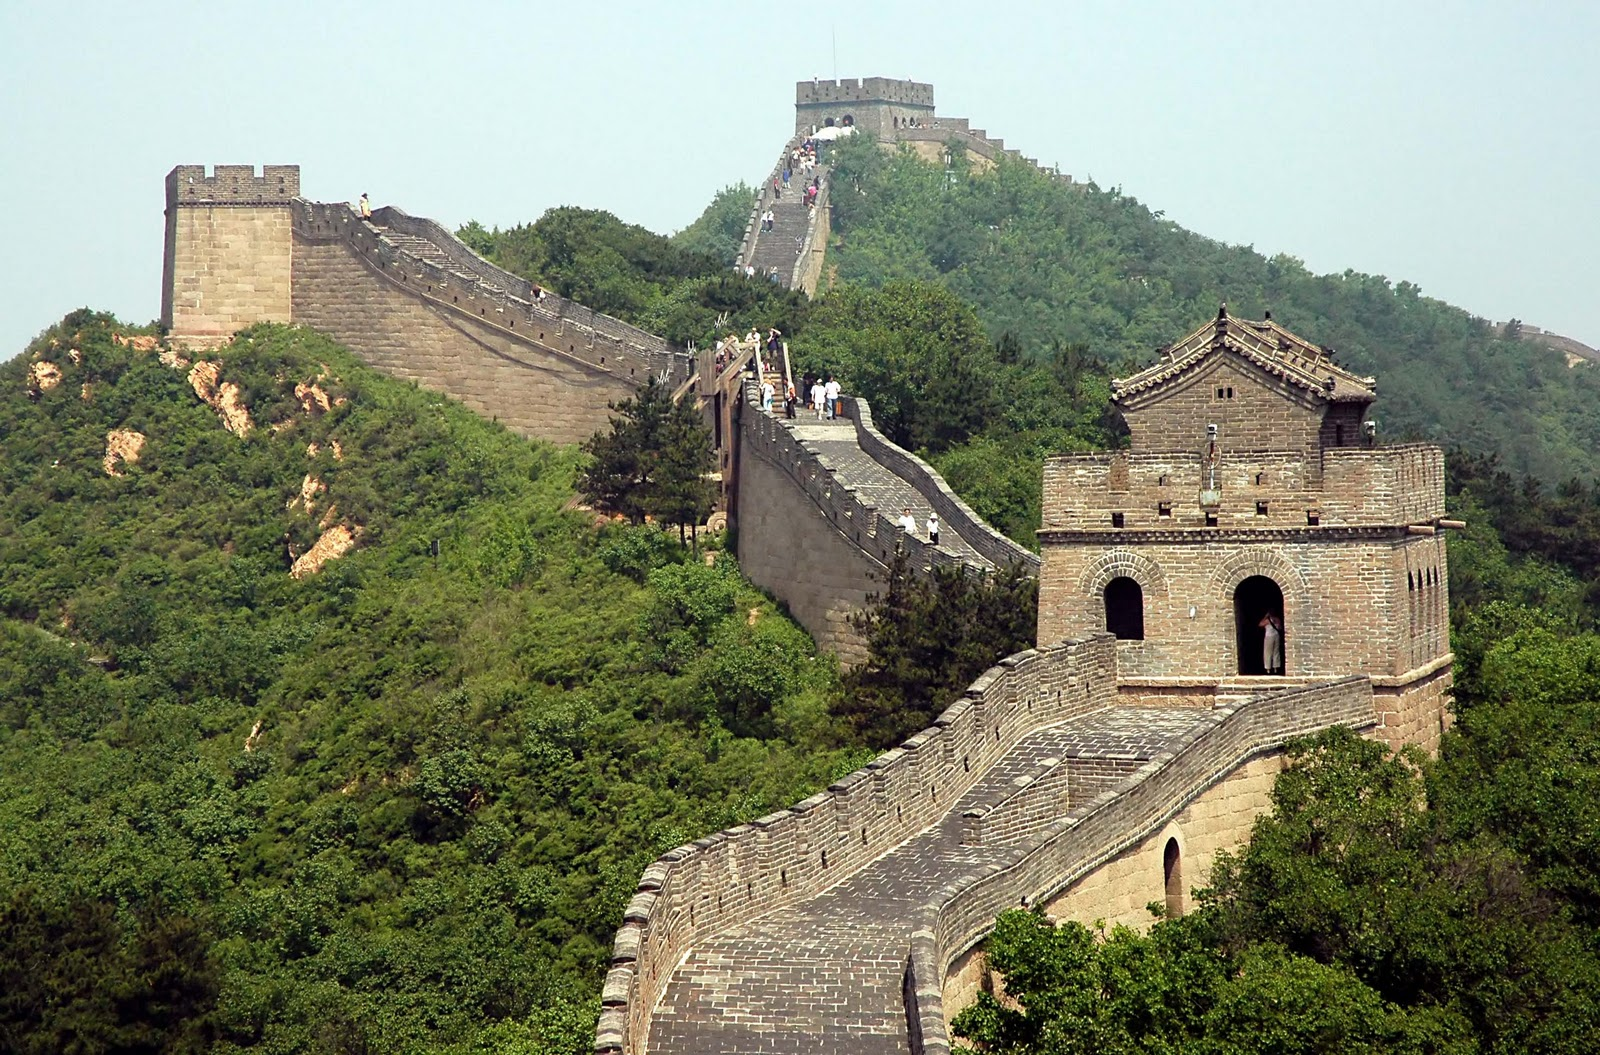 china places place most wall chinese beijing cool pretty amazing famous country sights spots three historical which many did